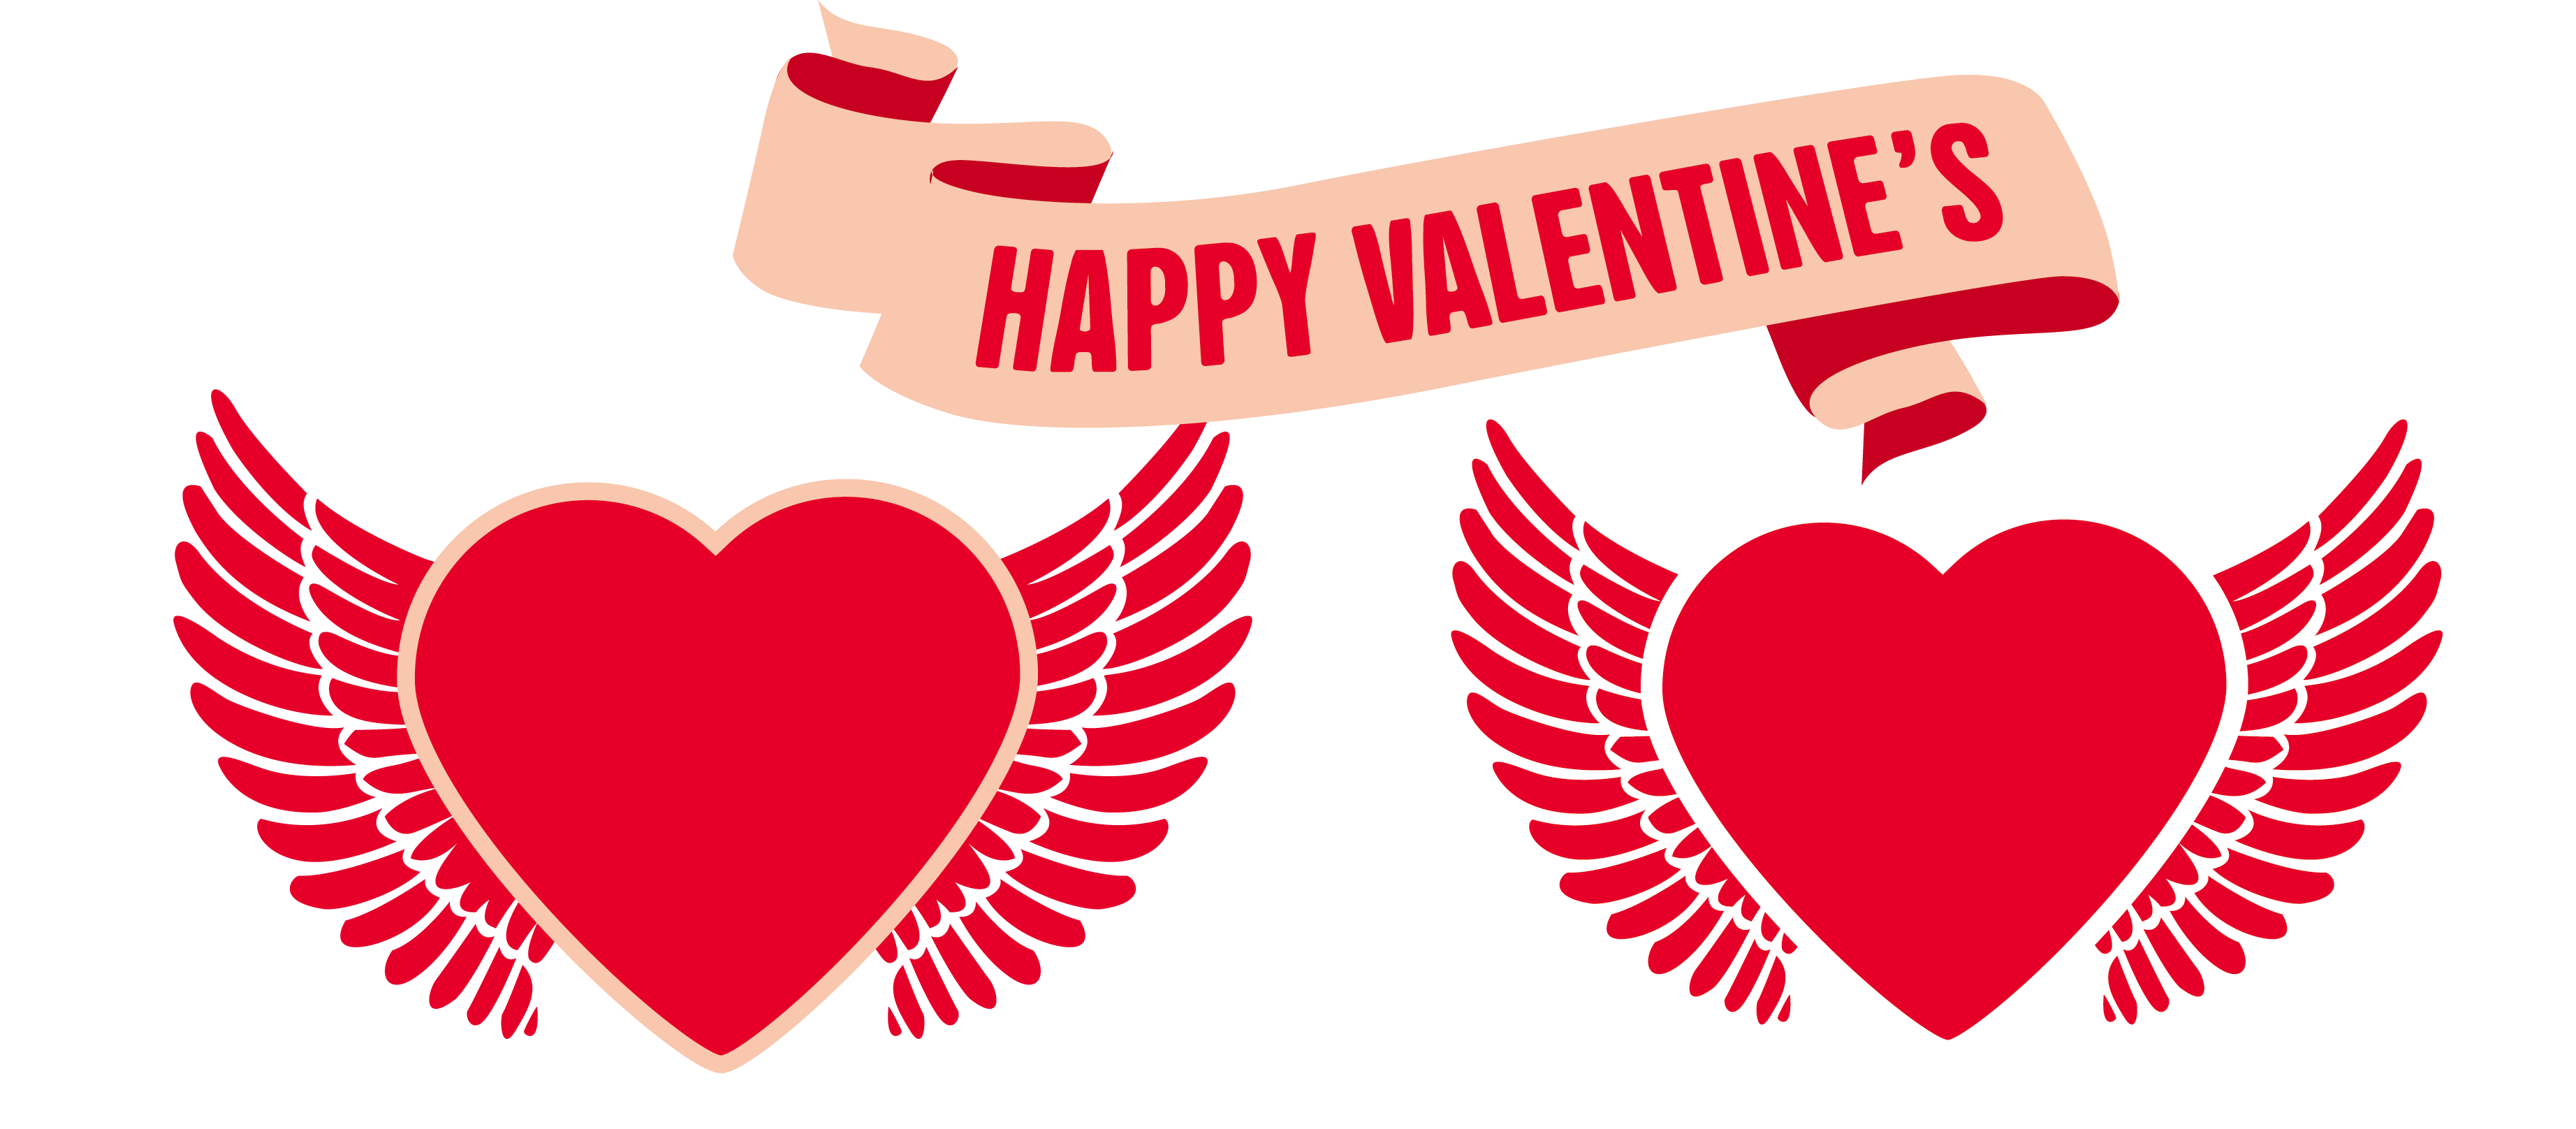 Free heart with wings clipart image black and white stock Valentine's Day heart with wings 3688*1616 transprent Png Free ... image black and white stock